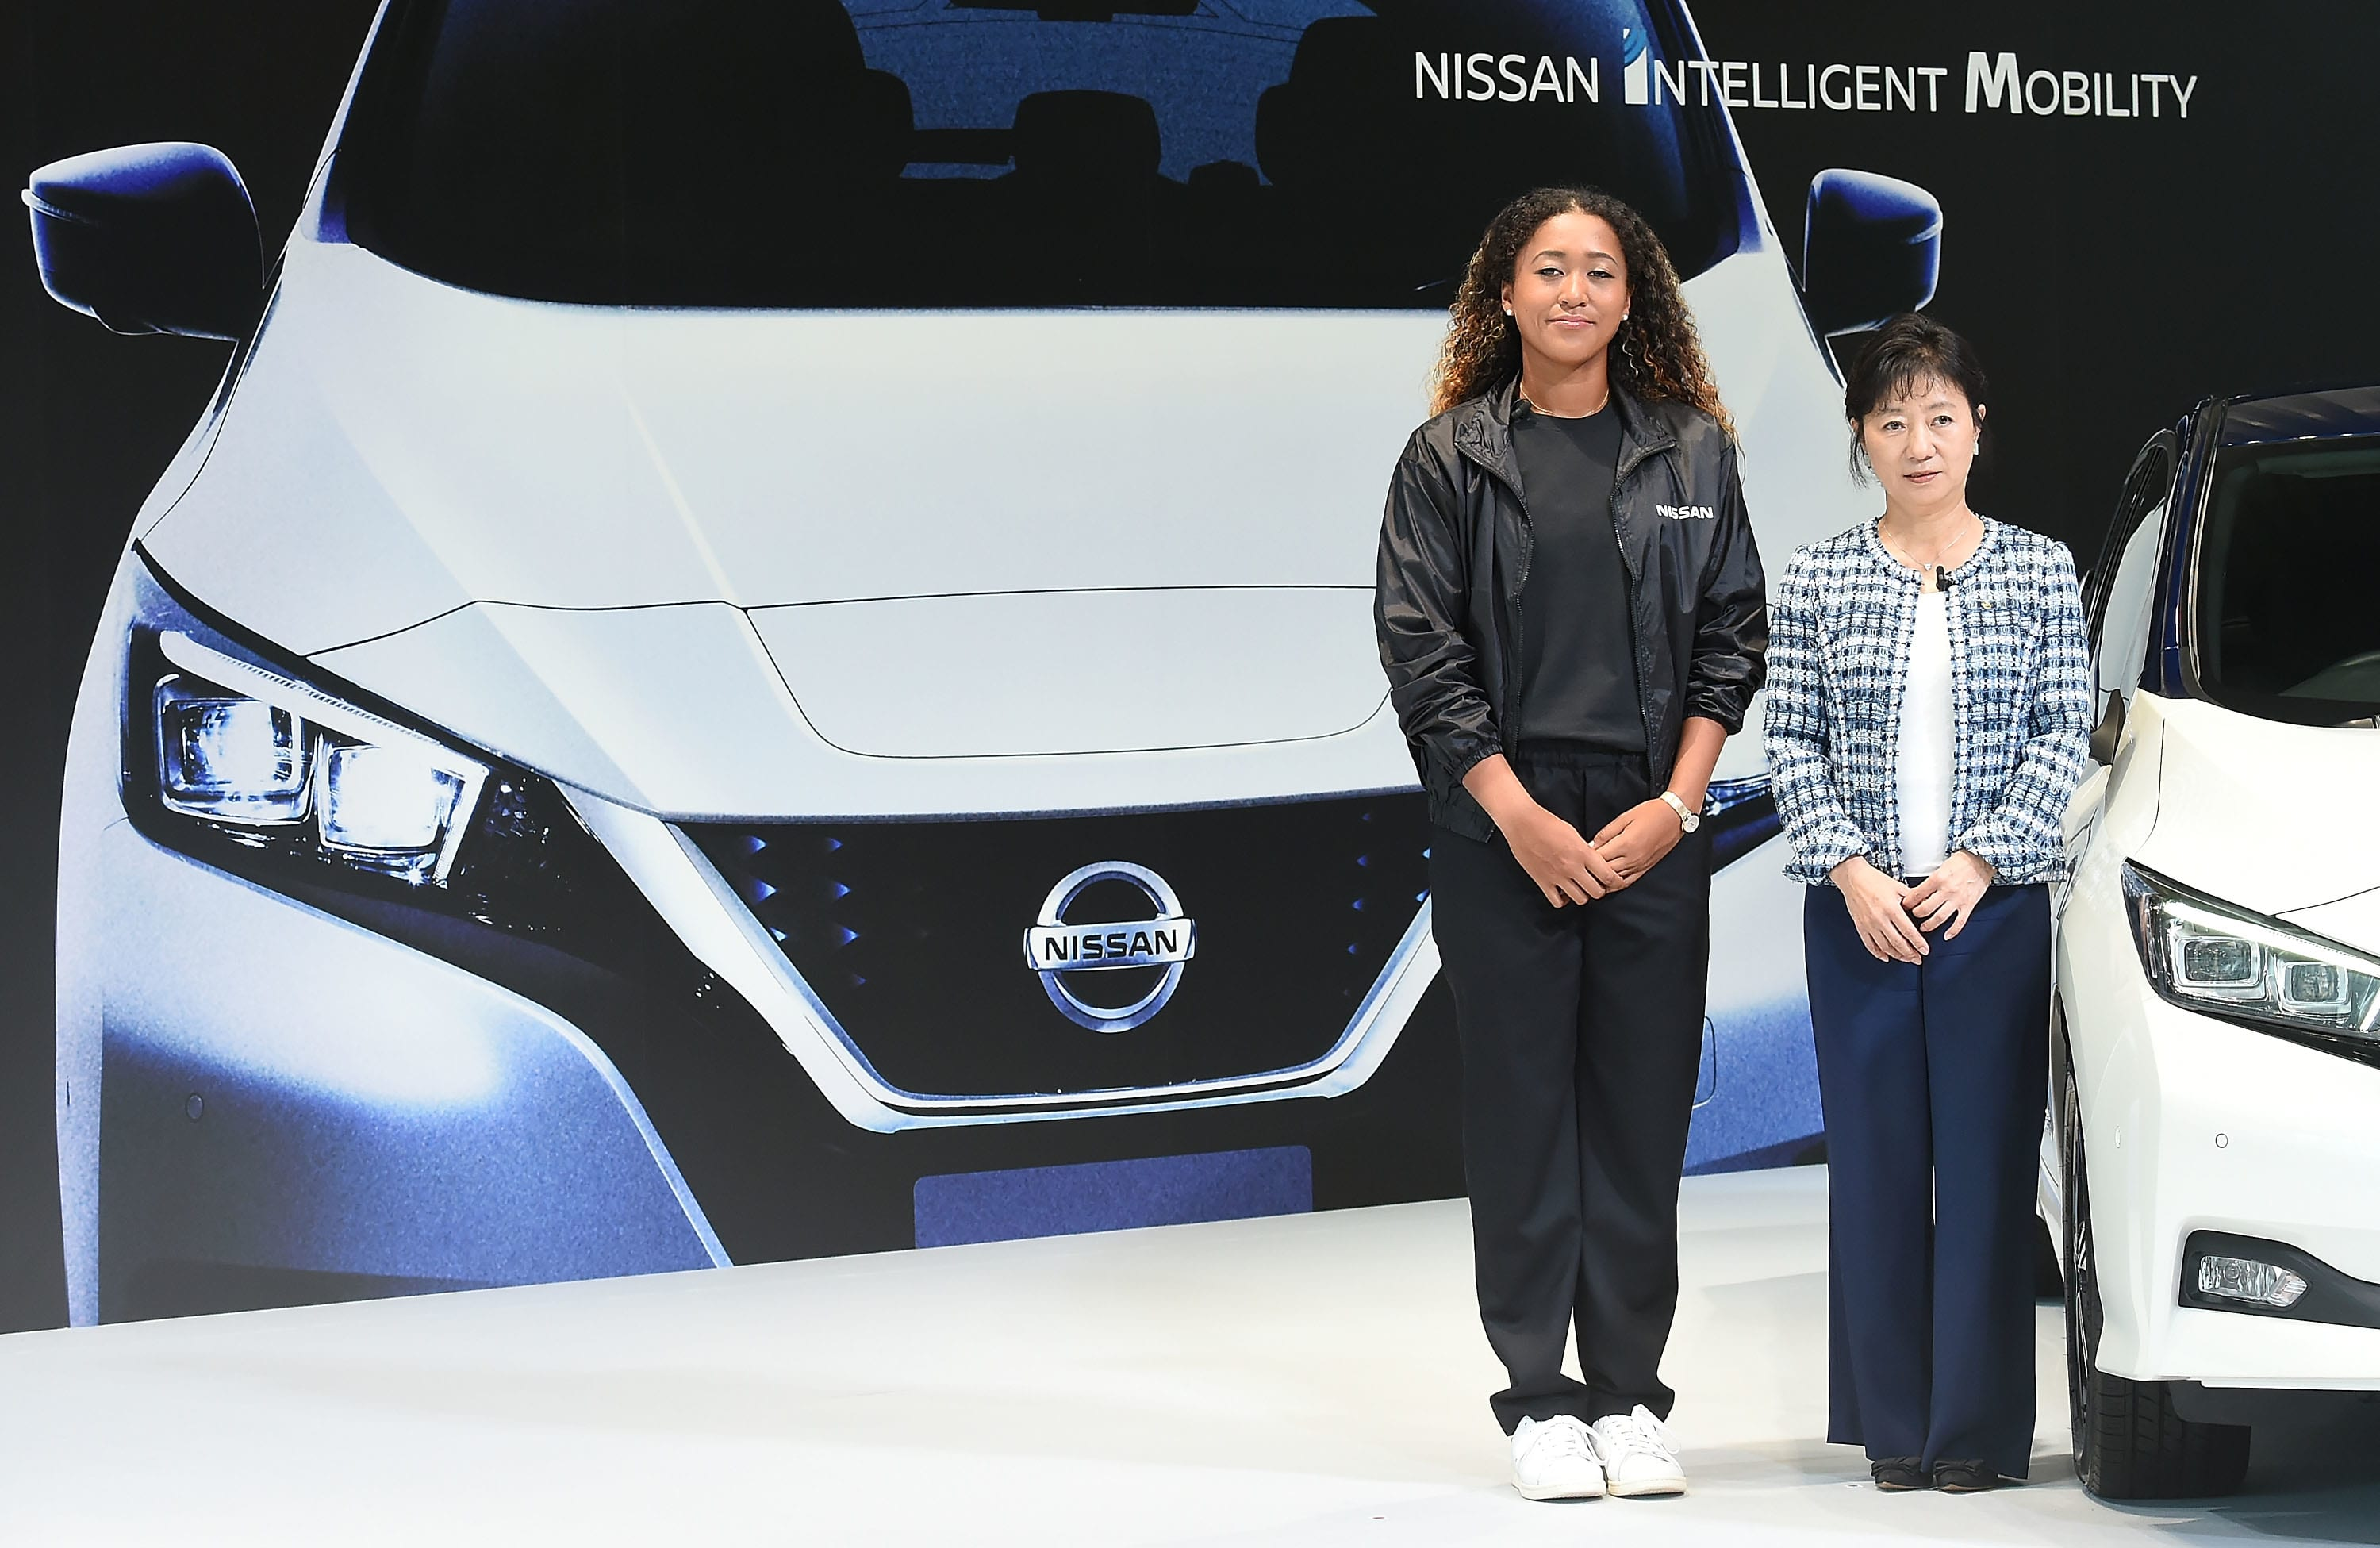 Naomi Osaka attends the press conference at Nissan Global Headquarters on September 13, 2018 in Yokohama, Japan.